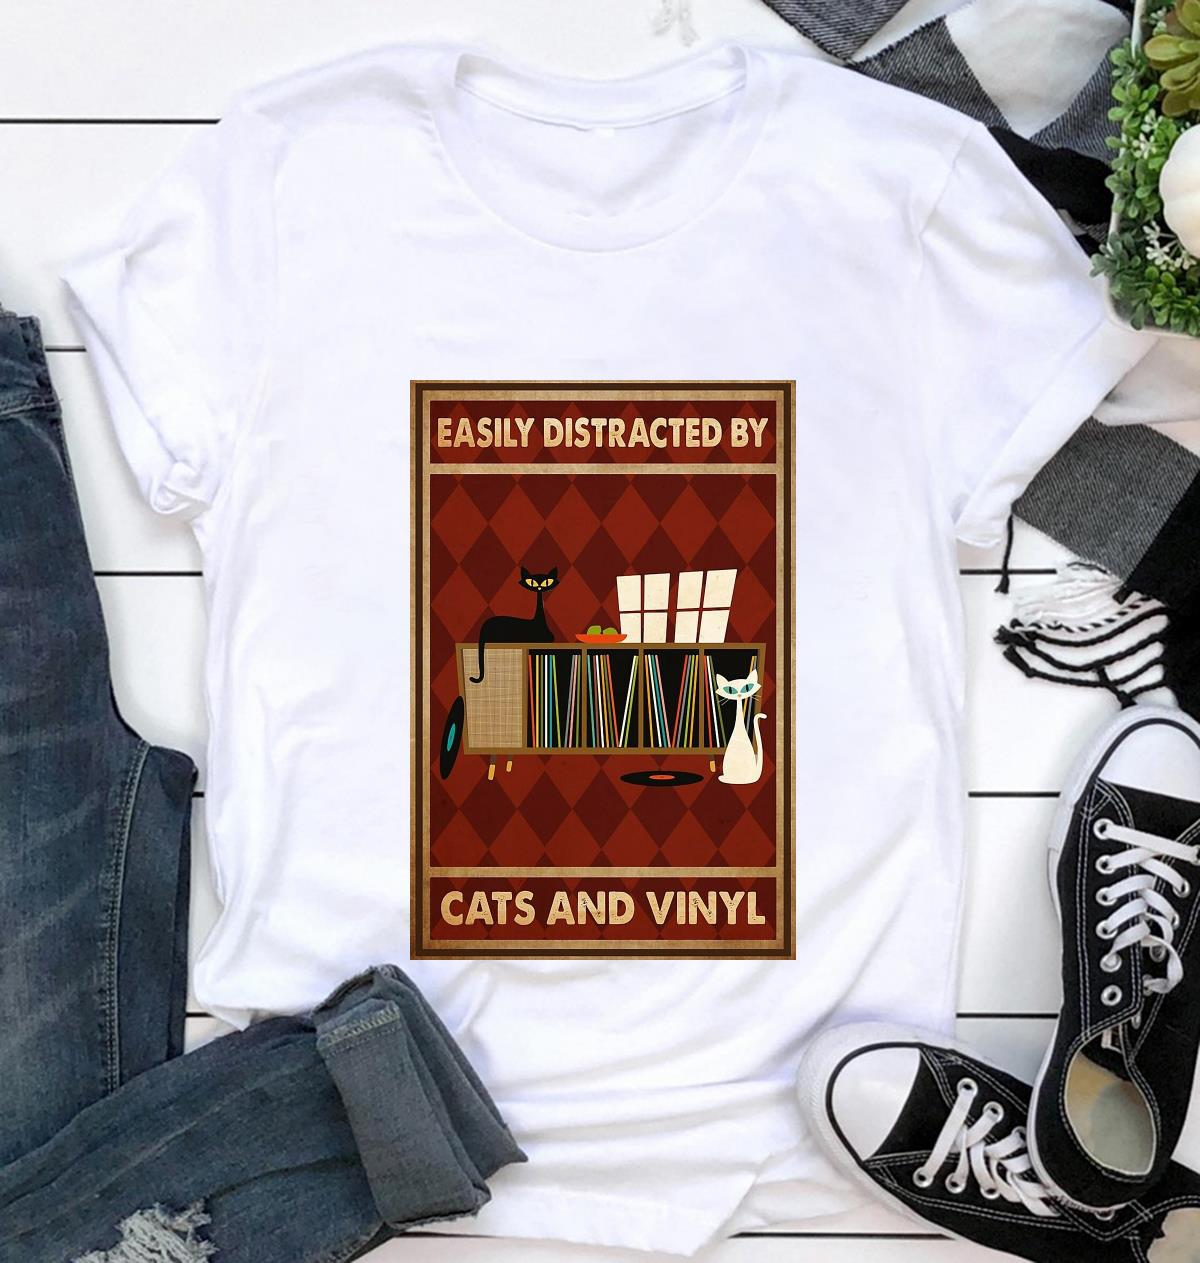 Easily distracted by cats and vinyl vertical poster canvas t-shirt